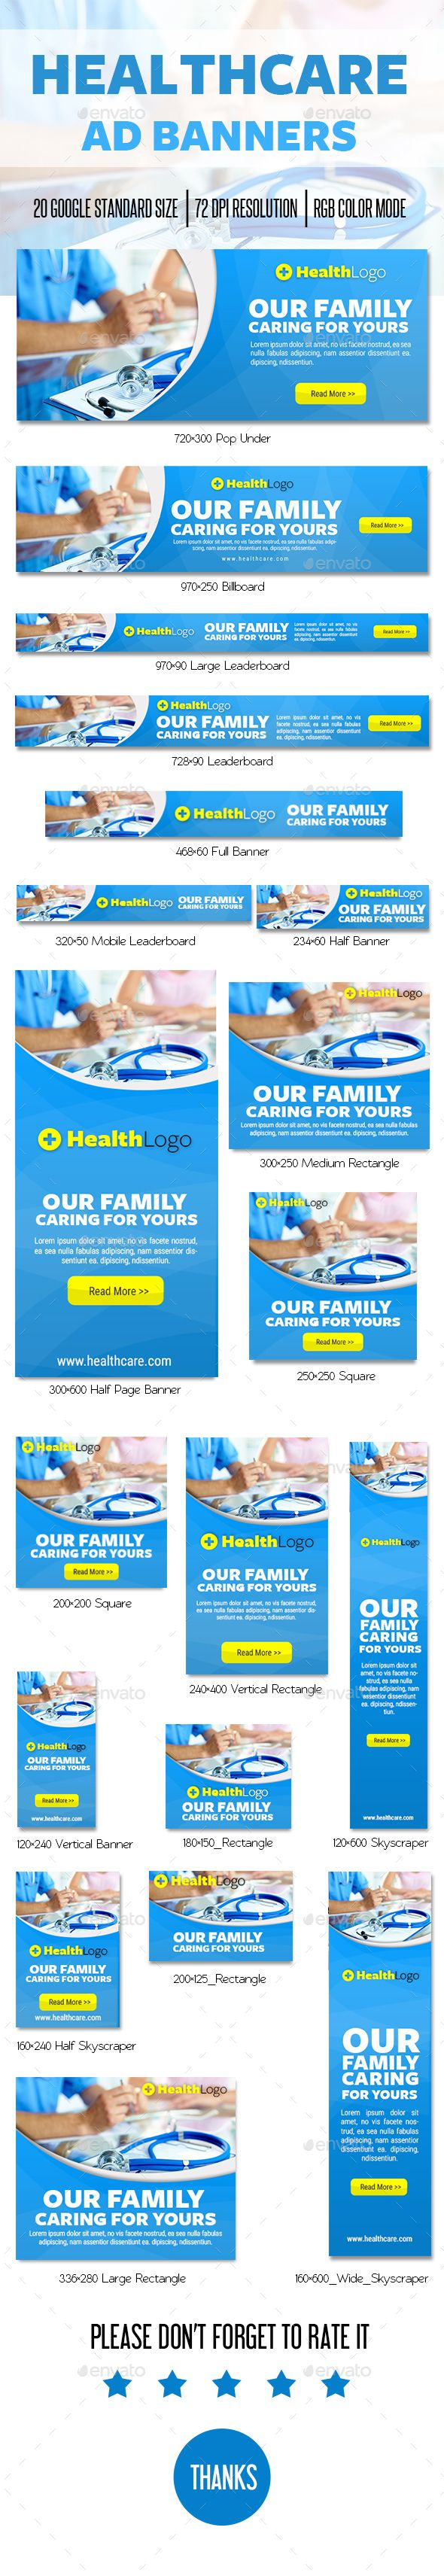 Healthcare Advertising : Healthcare Ad Banner — Photoshop